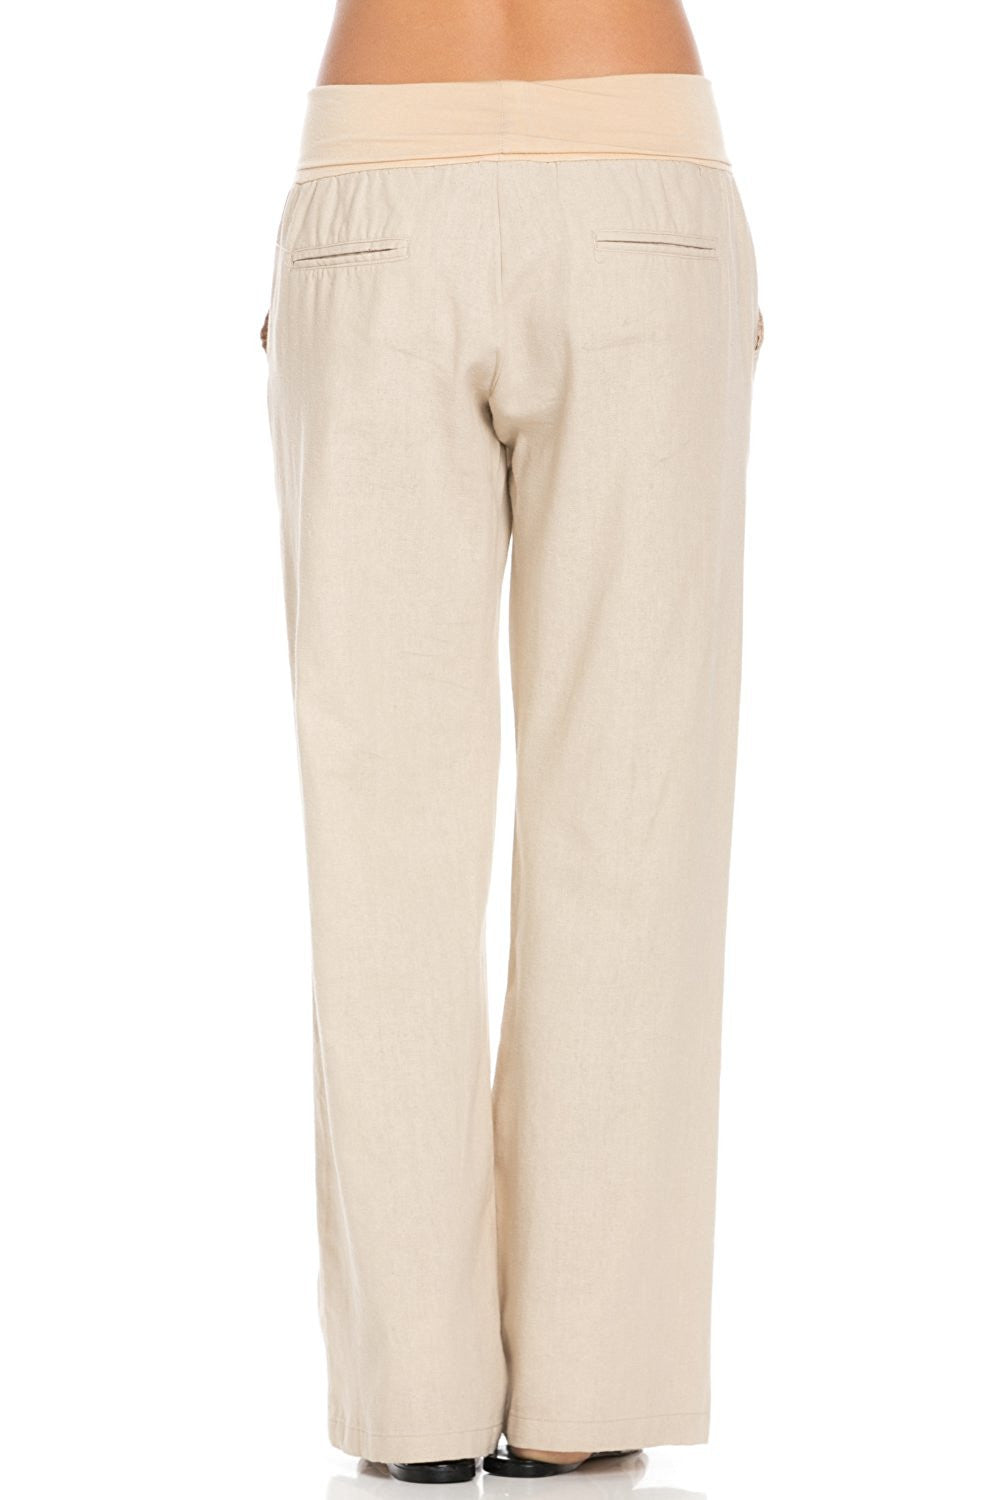 Comfy Fold Over Linen Pants (Natural) - Poplooks